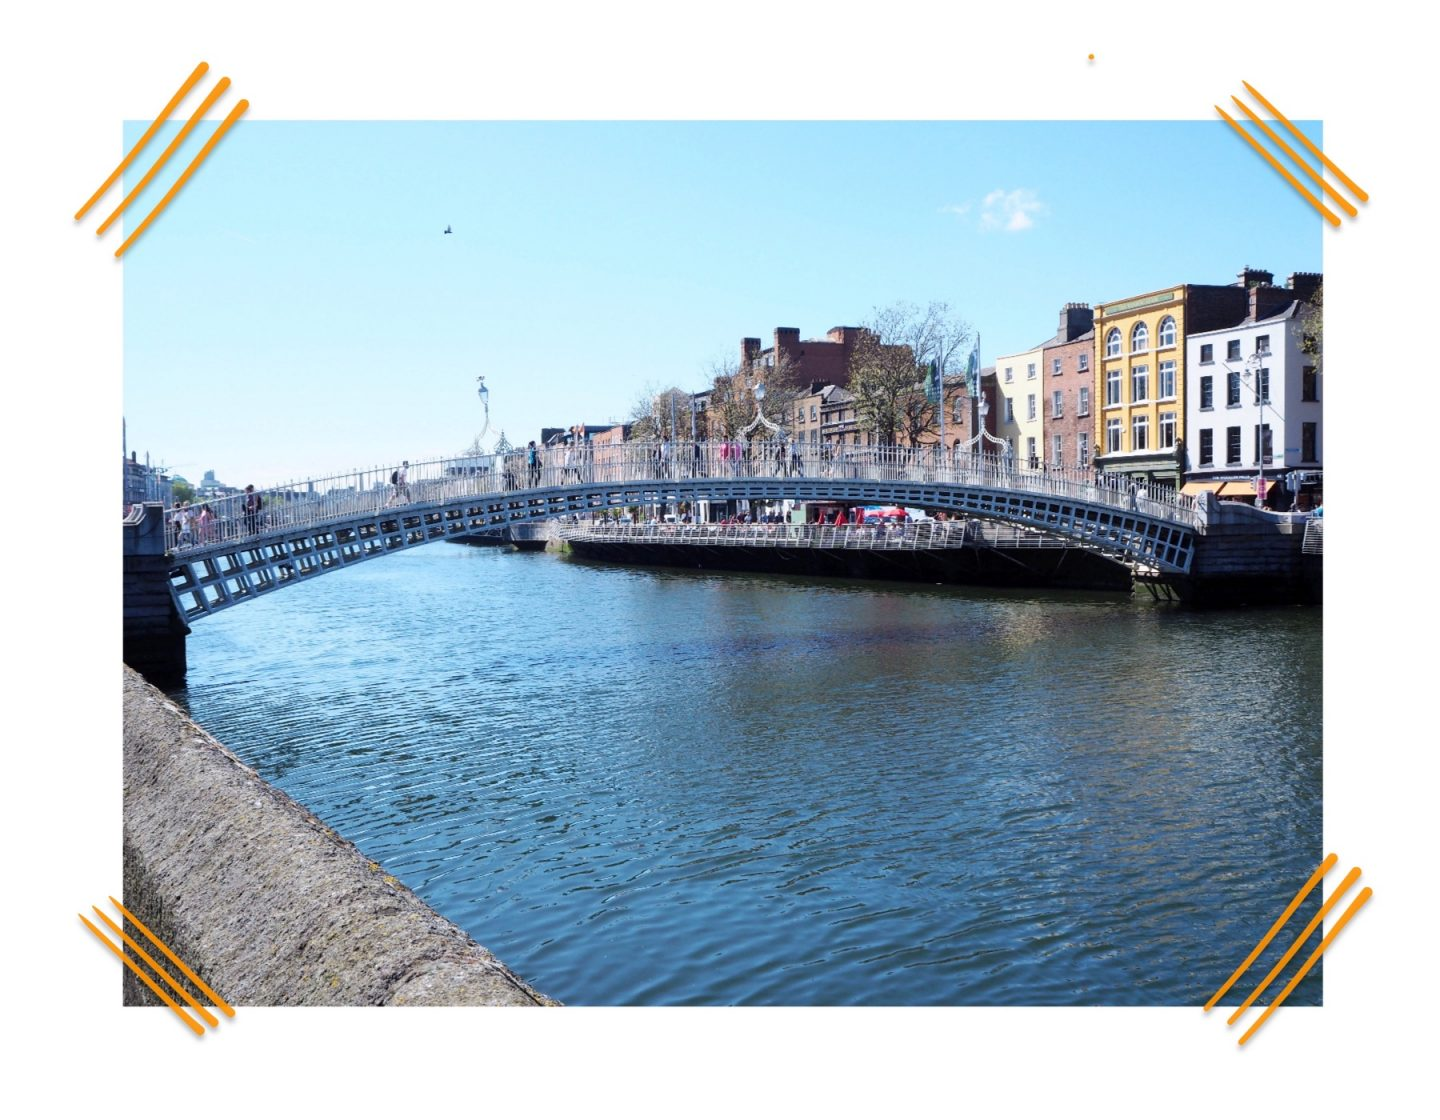 Dublin diaries; Exploring & Guinness tour - half penny bridge